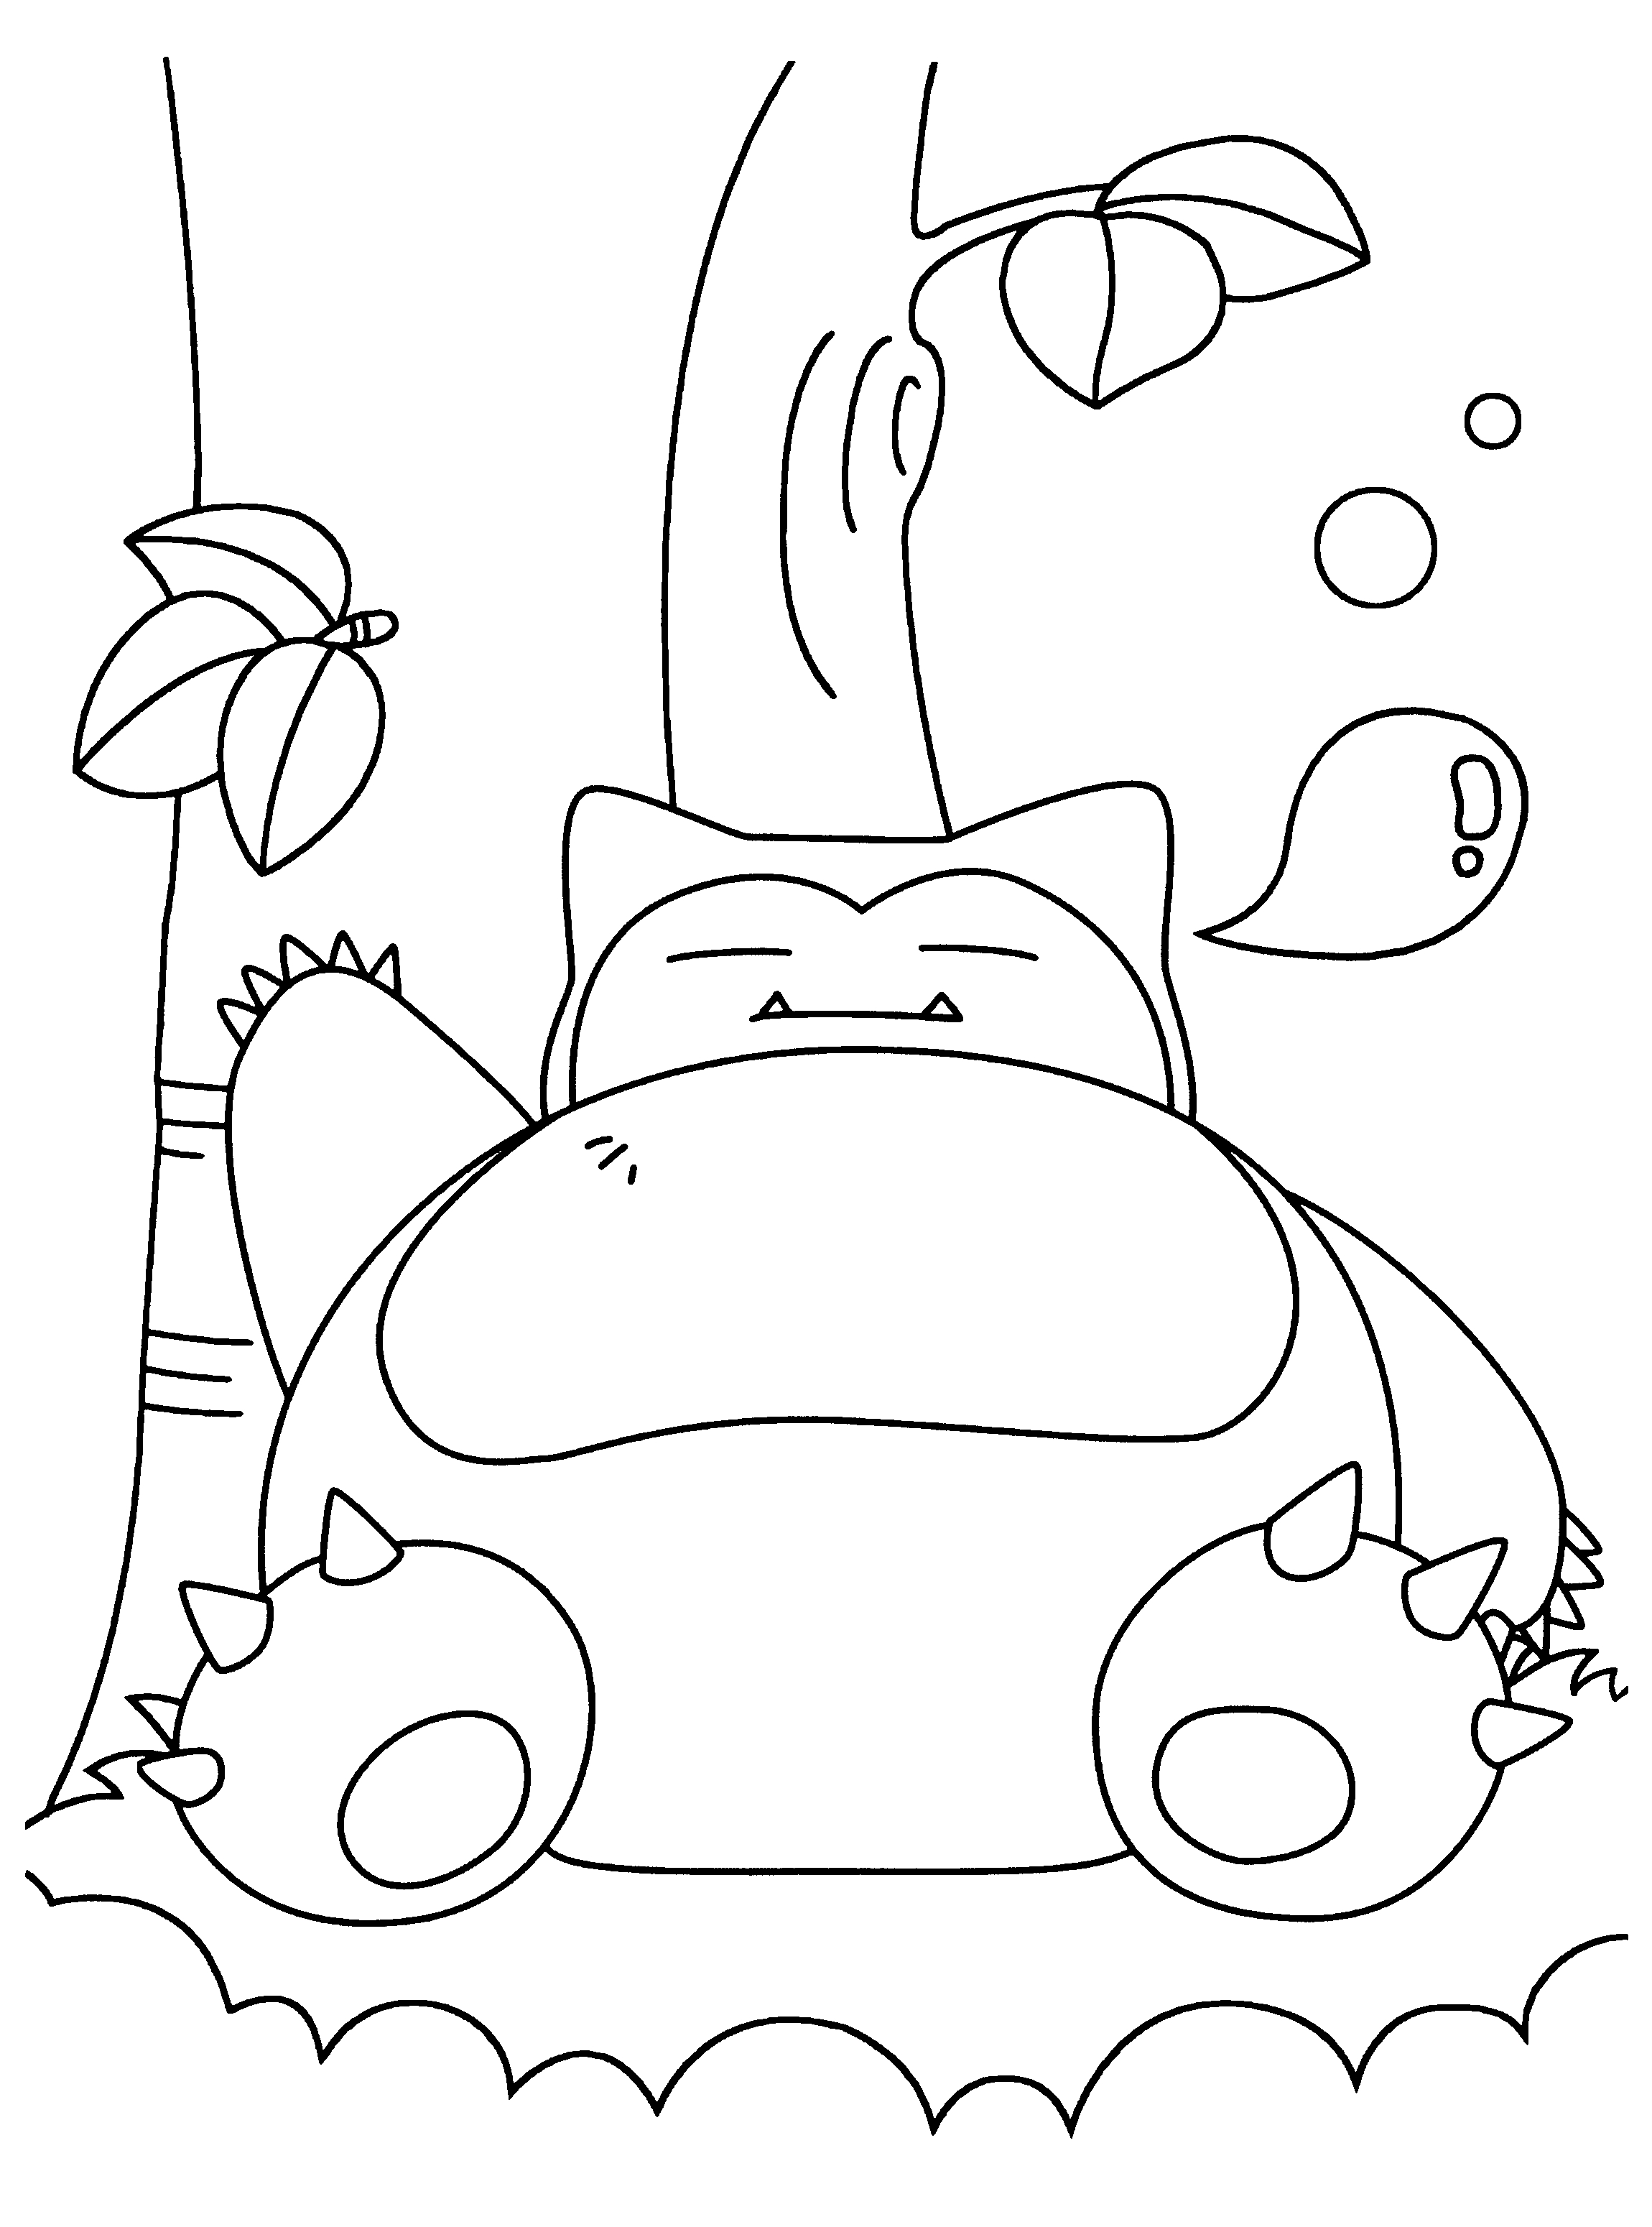 pokemon coloring pages pokemon coloring pages print and colorcom pokemon pages coloring